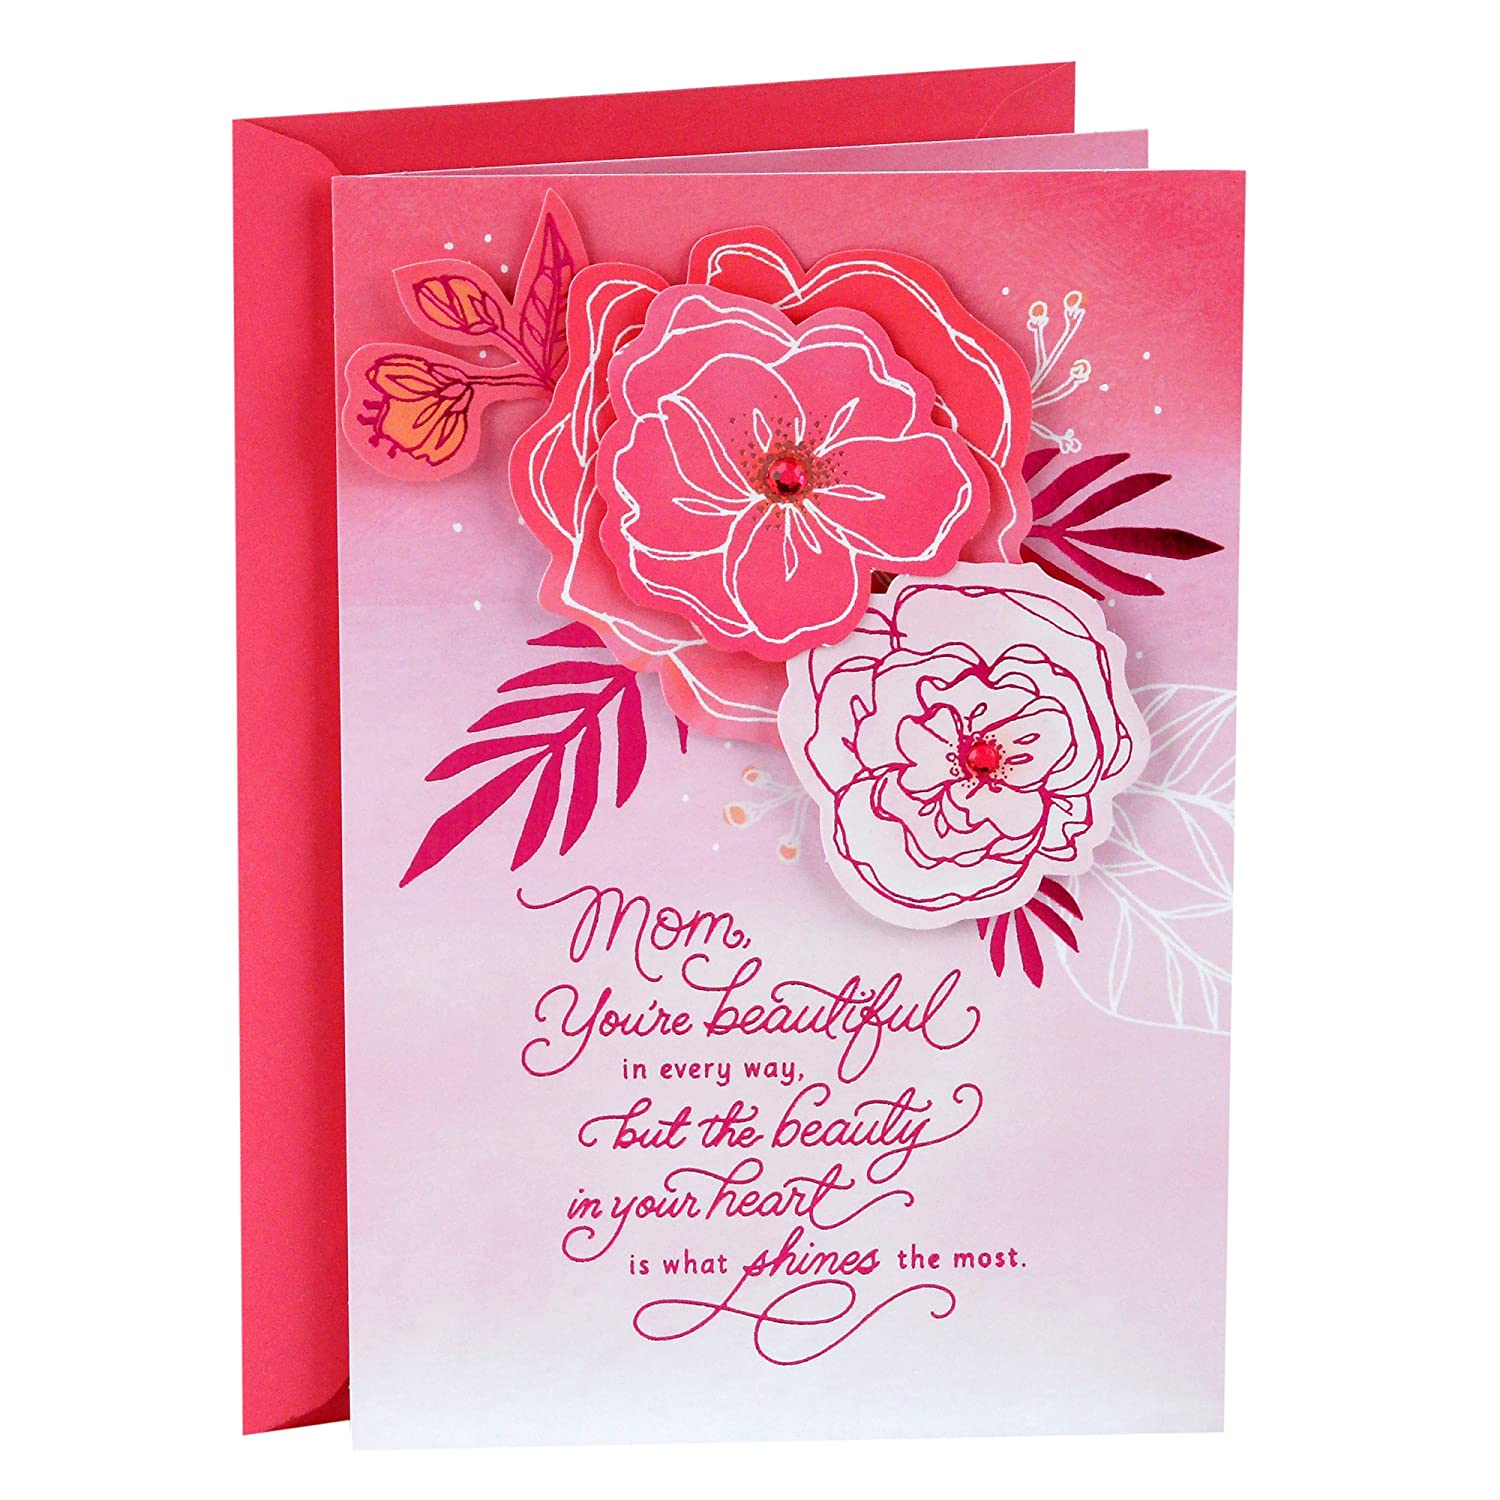 HALLMARK BEAUTIFUL BOUQUET OF FLOWERS TO A DEAR MOTHER BIRTHDAY GREETING CARD